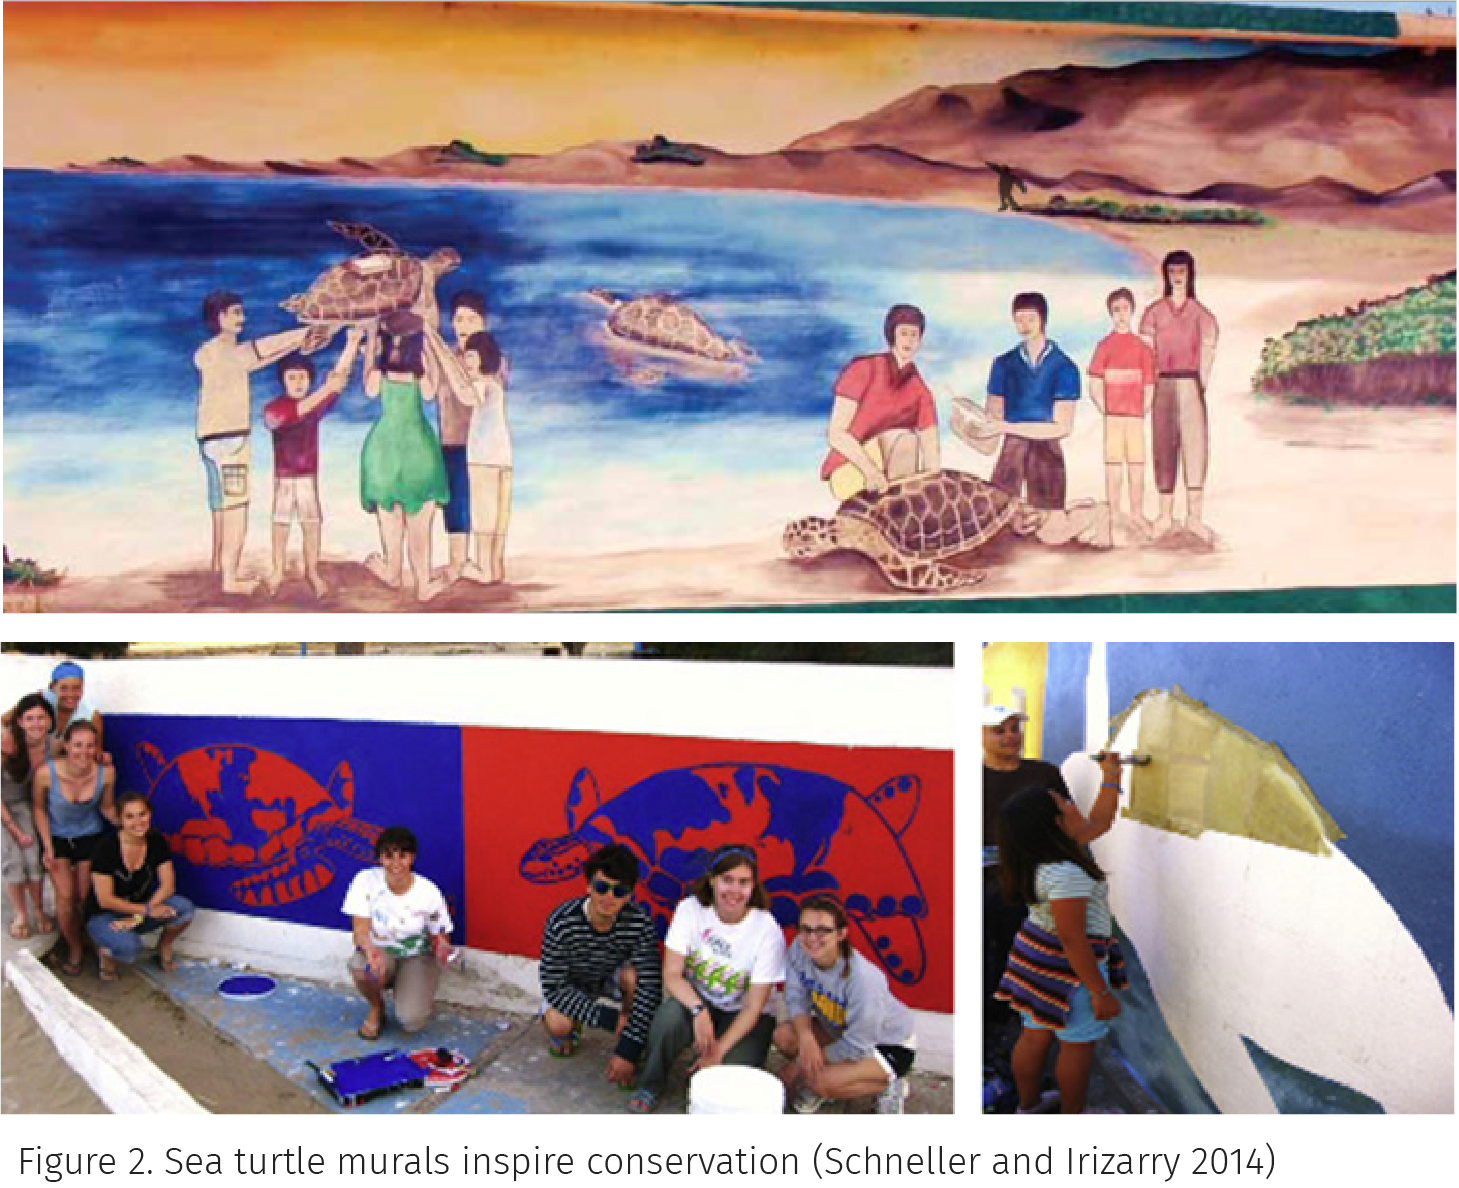 Figure 2. Sea turtle murals inspire conservation (Schneller and Irizarry 2014)